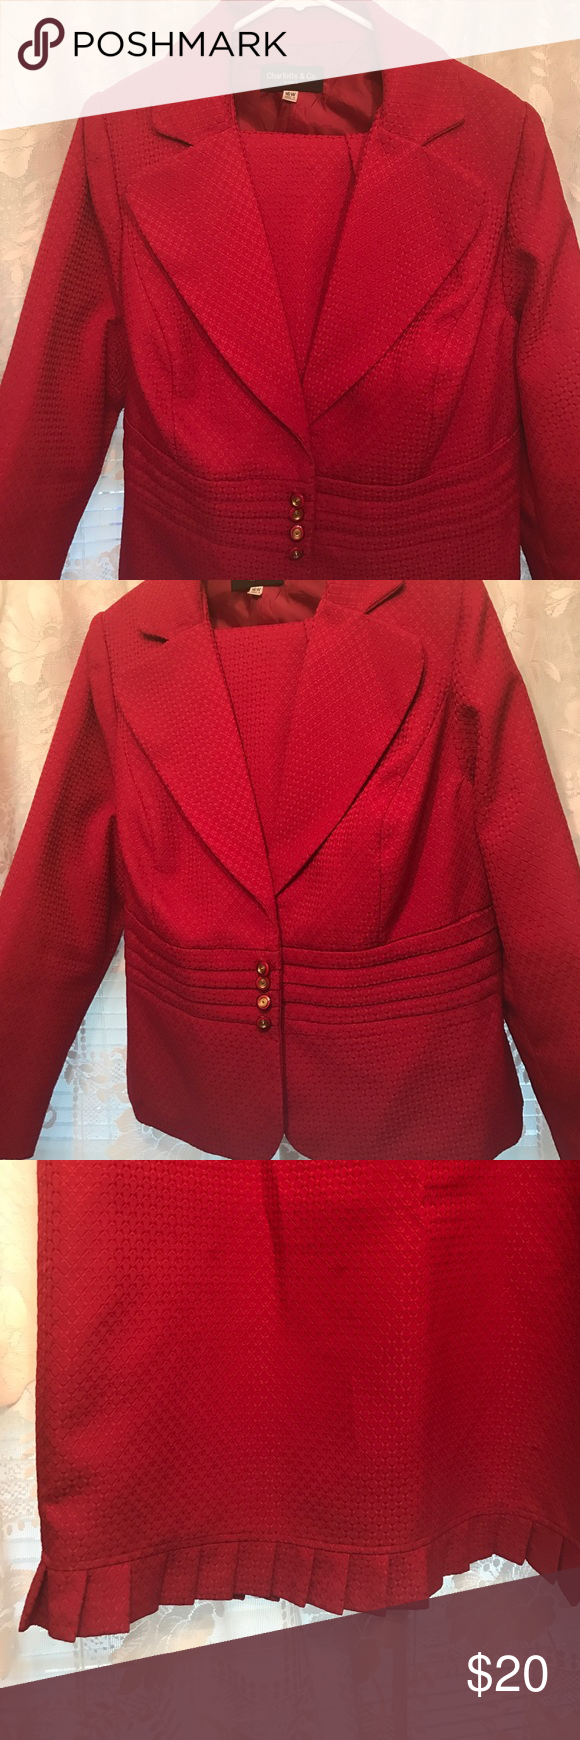 Nice 2 pc burgundy suit sz 16w Beautiful suit!! Such a beautiful color!!! The jacket is 44 inches armpit to armpit and 44 inches seam to seam in the waist area. Gorgeous neat little ruffles at the hem!!  Length is 49 inches from top to bottom, mock buttons at the waist, snaps in 3 snaps inside. Skirts length is 56 inches, waist is 39 inches with elastic in the back of the skirt. In gently used condition. Dry clean only. Other